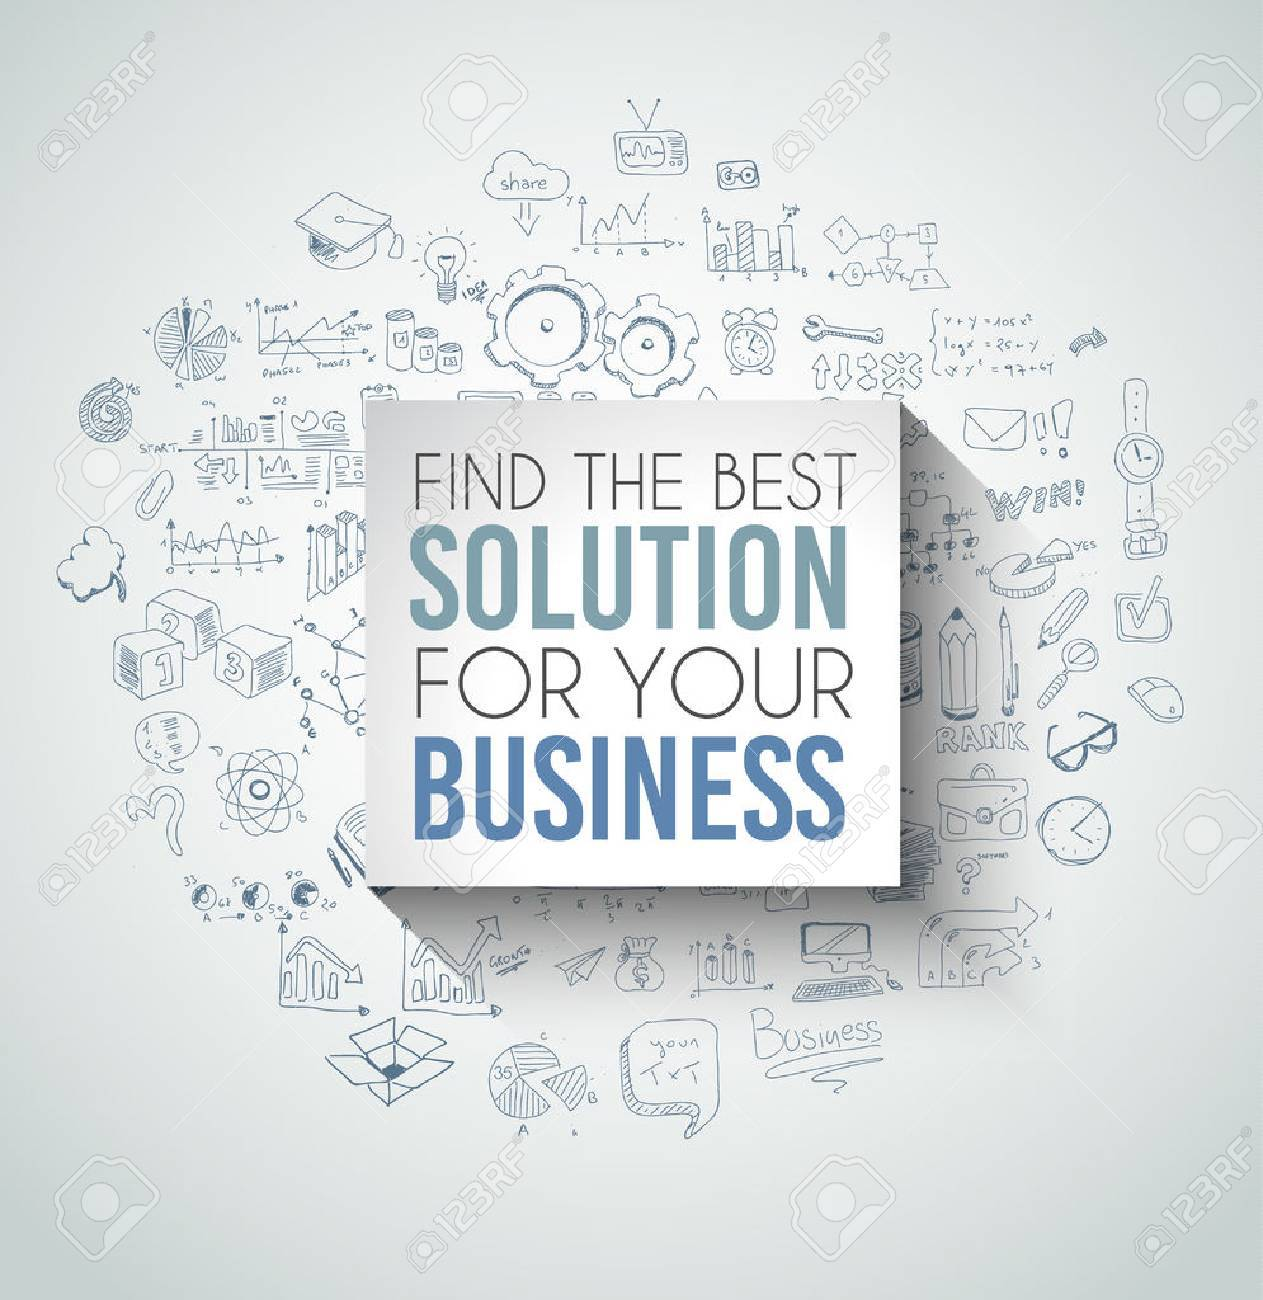 Best Solution for Your Business Slogan over a squared flat panel with soft shadow over an hand drawn doodles skeches collection of symbols, graphs, maths, infographics ans so on. - 45856680